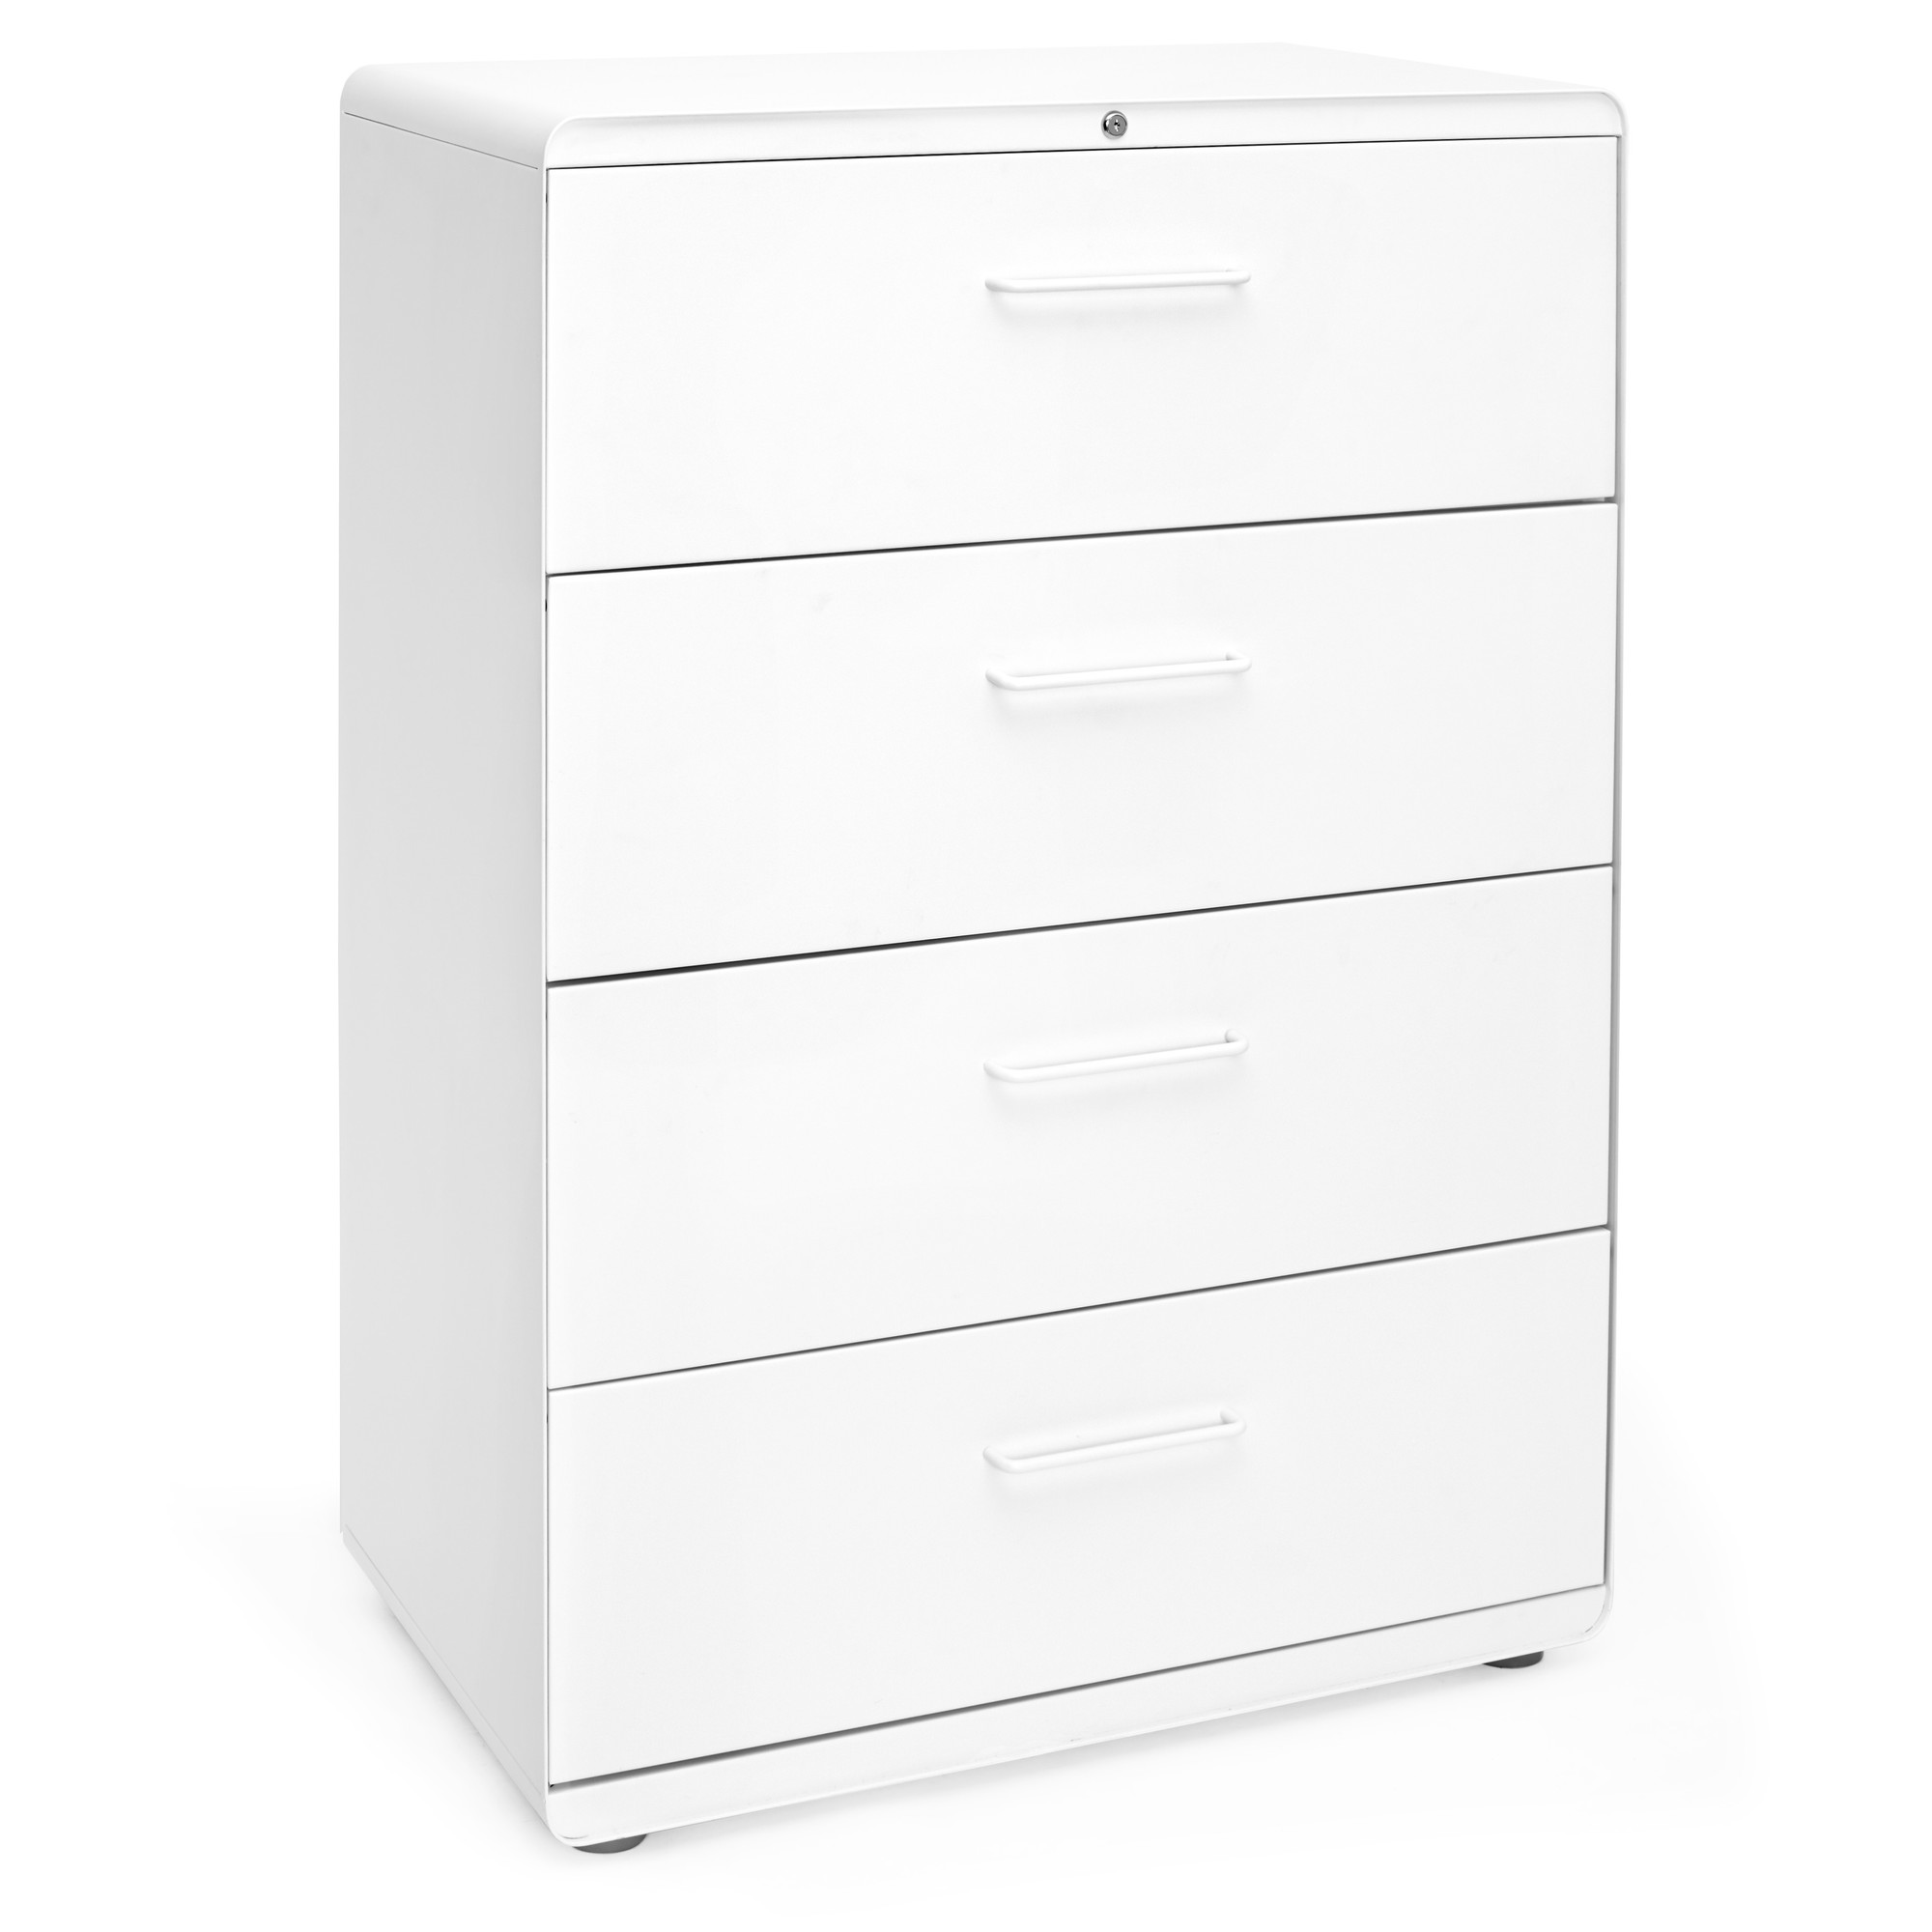 Cabinet Drawers White Stow 4 Drawer Lateral File Cabinet File Cabinets And Storage Poppin